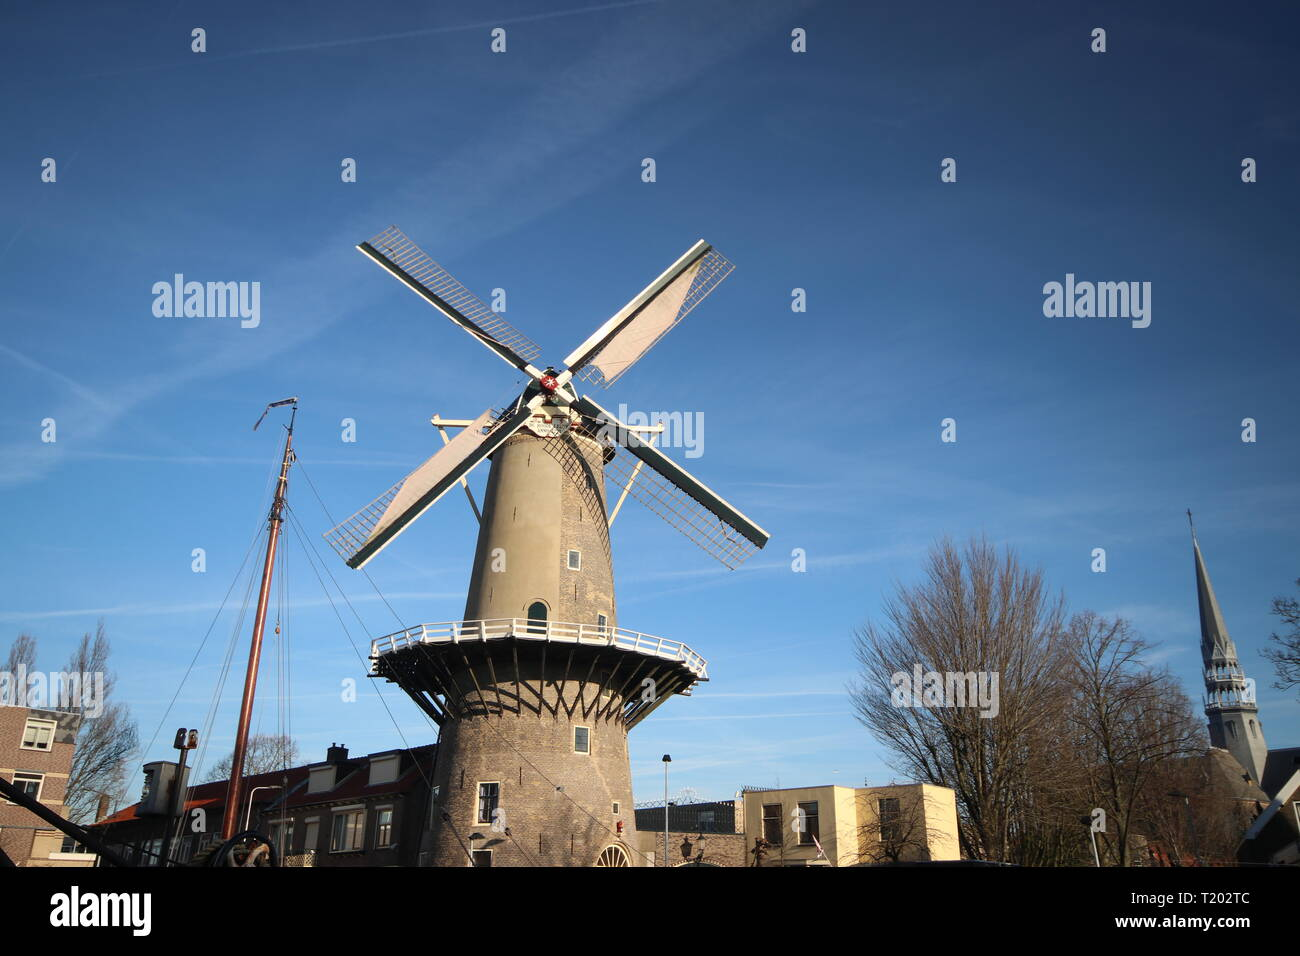 Windmill de Roode Leeuw (red lion in Englisch) at the turfsingel at downtown Gouda in the Netherlands - Stock Image